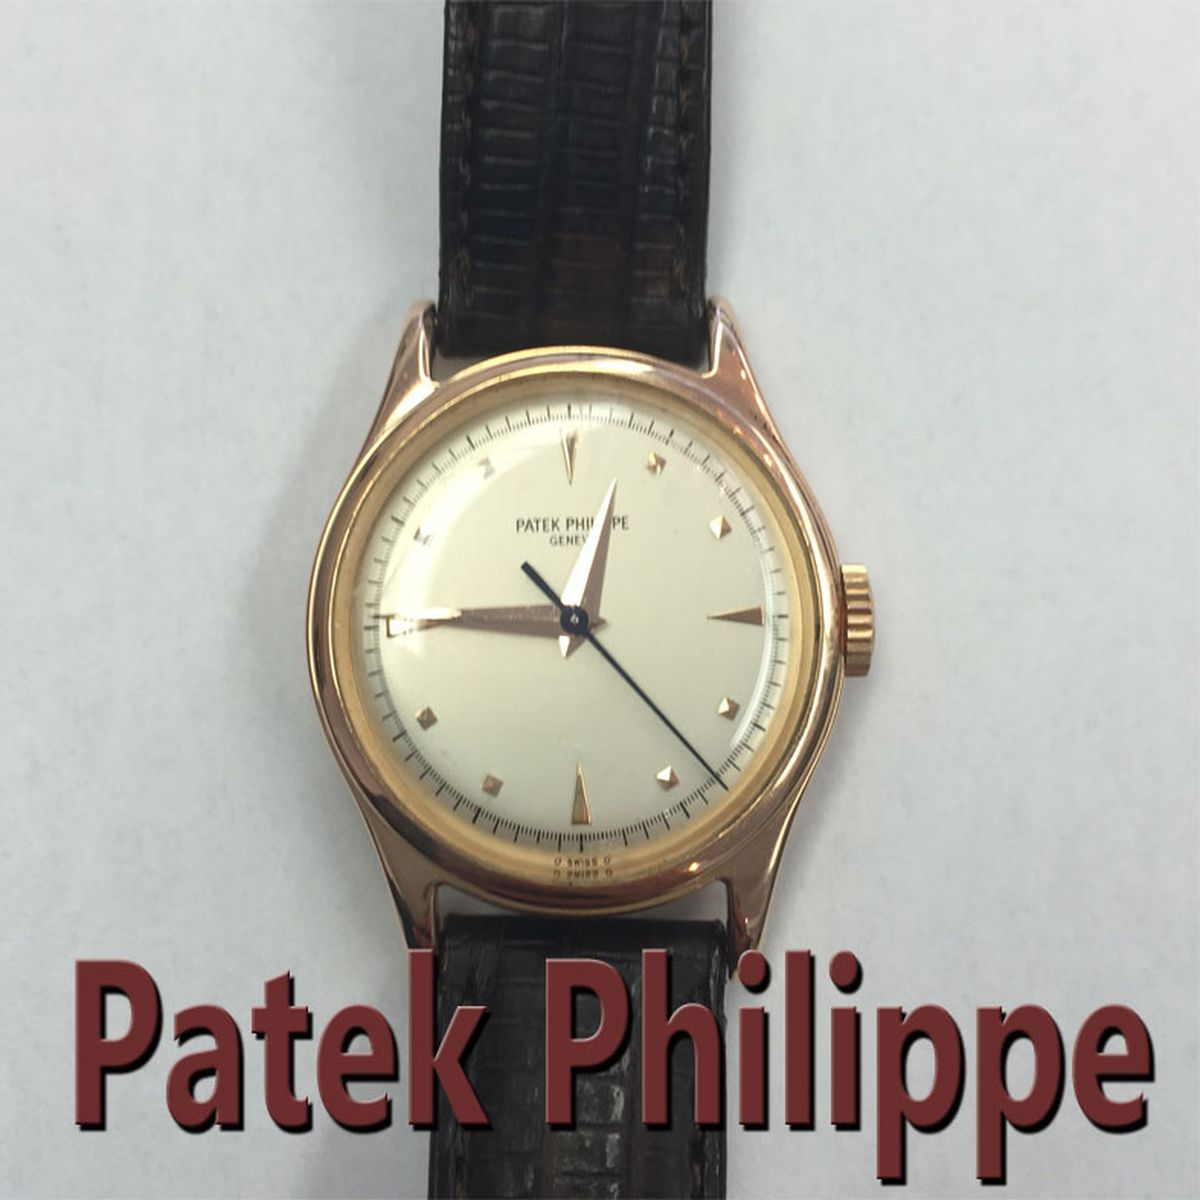 What The Patek Philippe Company is Famous For